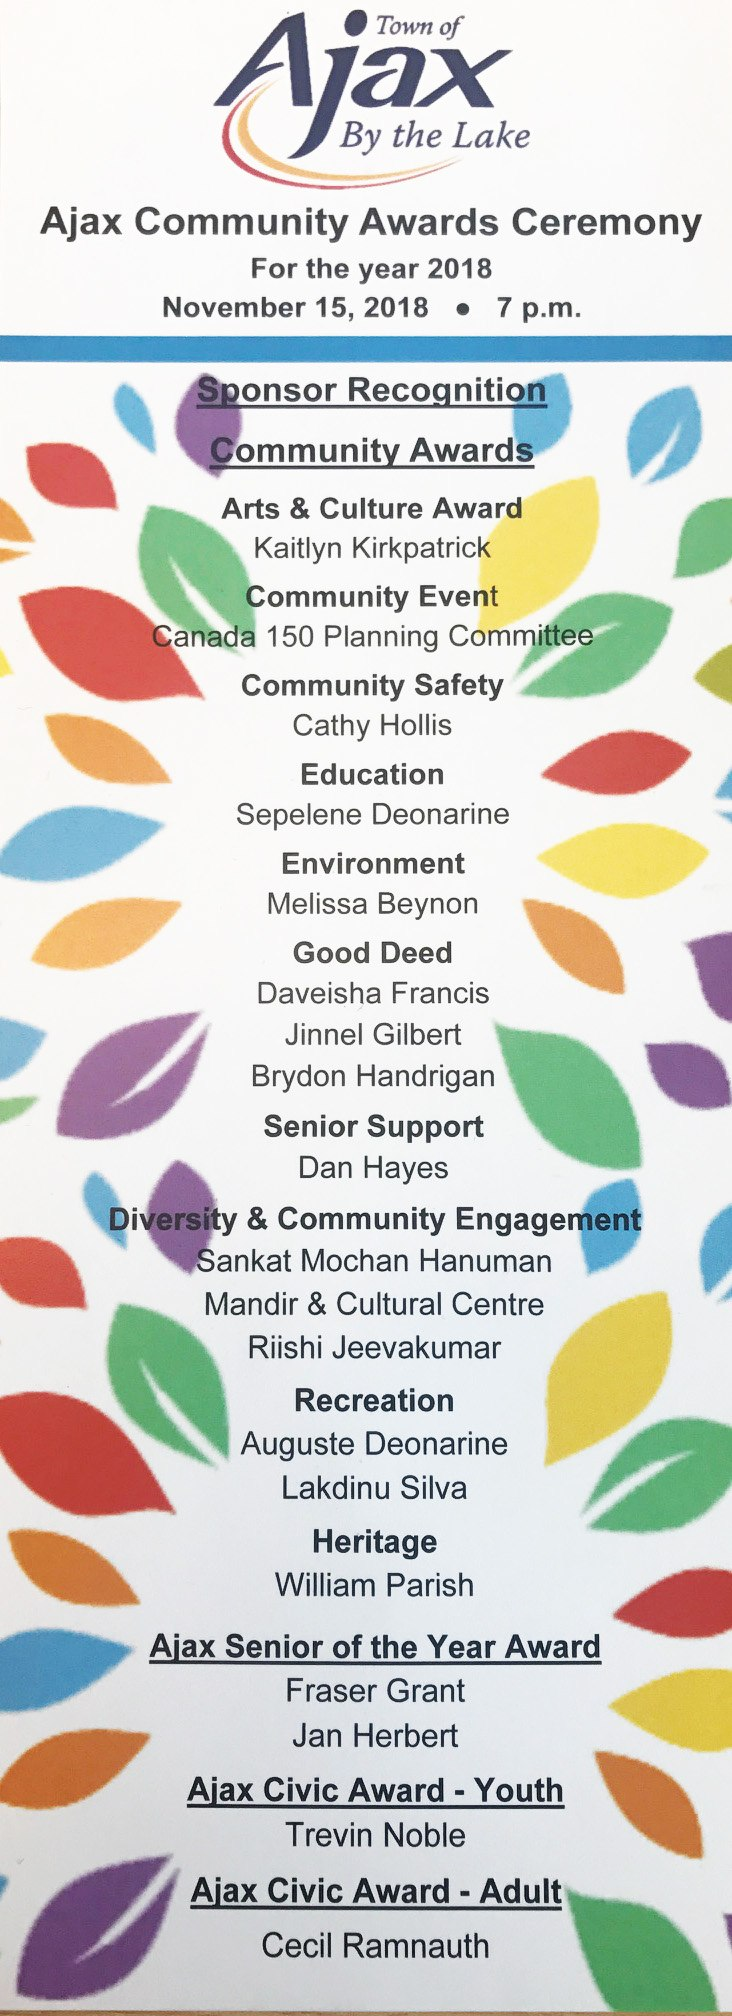 2019 Ajax Community Awards Ceremony Agenda